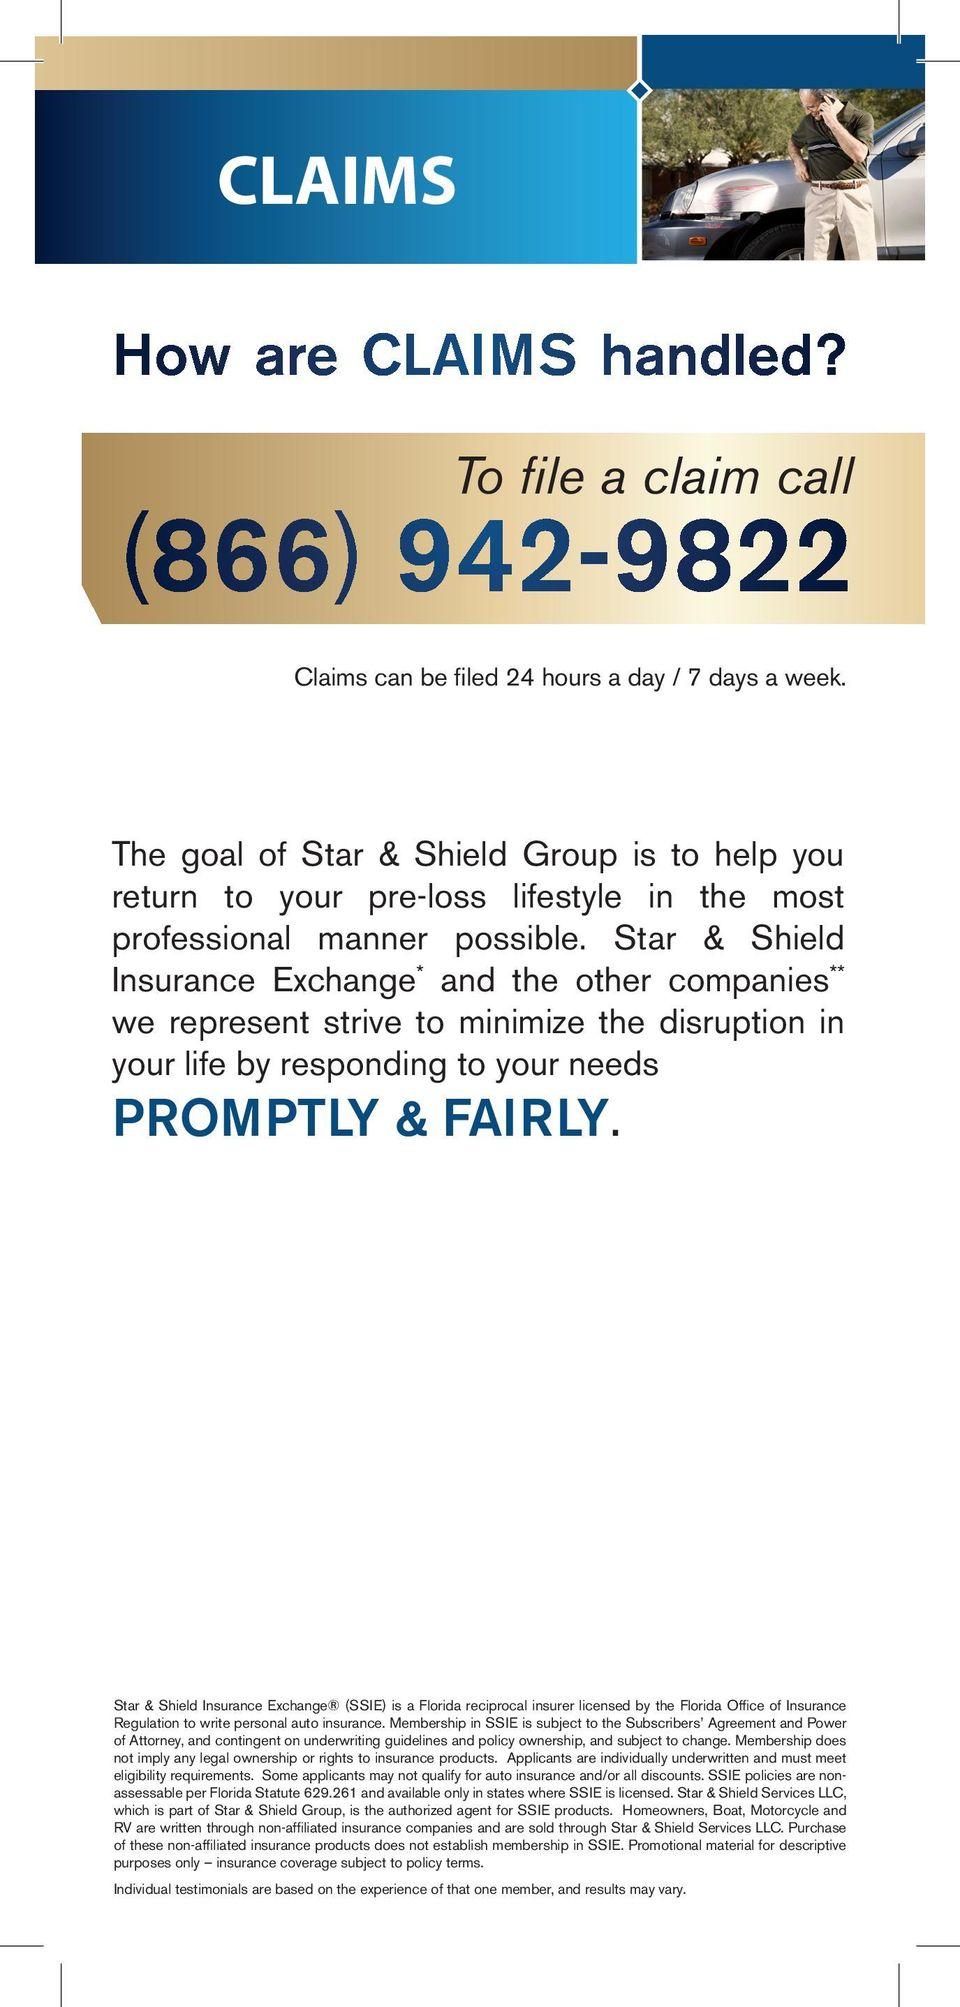 Star & Shield Insurance Exchange * and the other companies ** we represent strive to minimize the disruption in your life by responding to your needs PROMPTLY & FAIRLY.